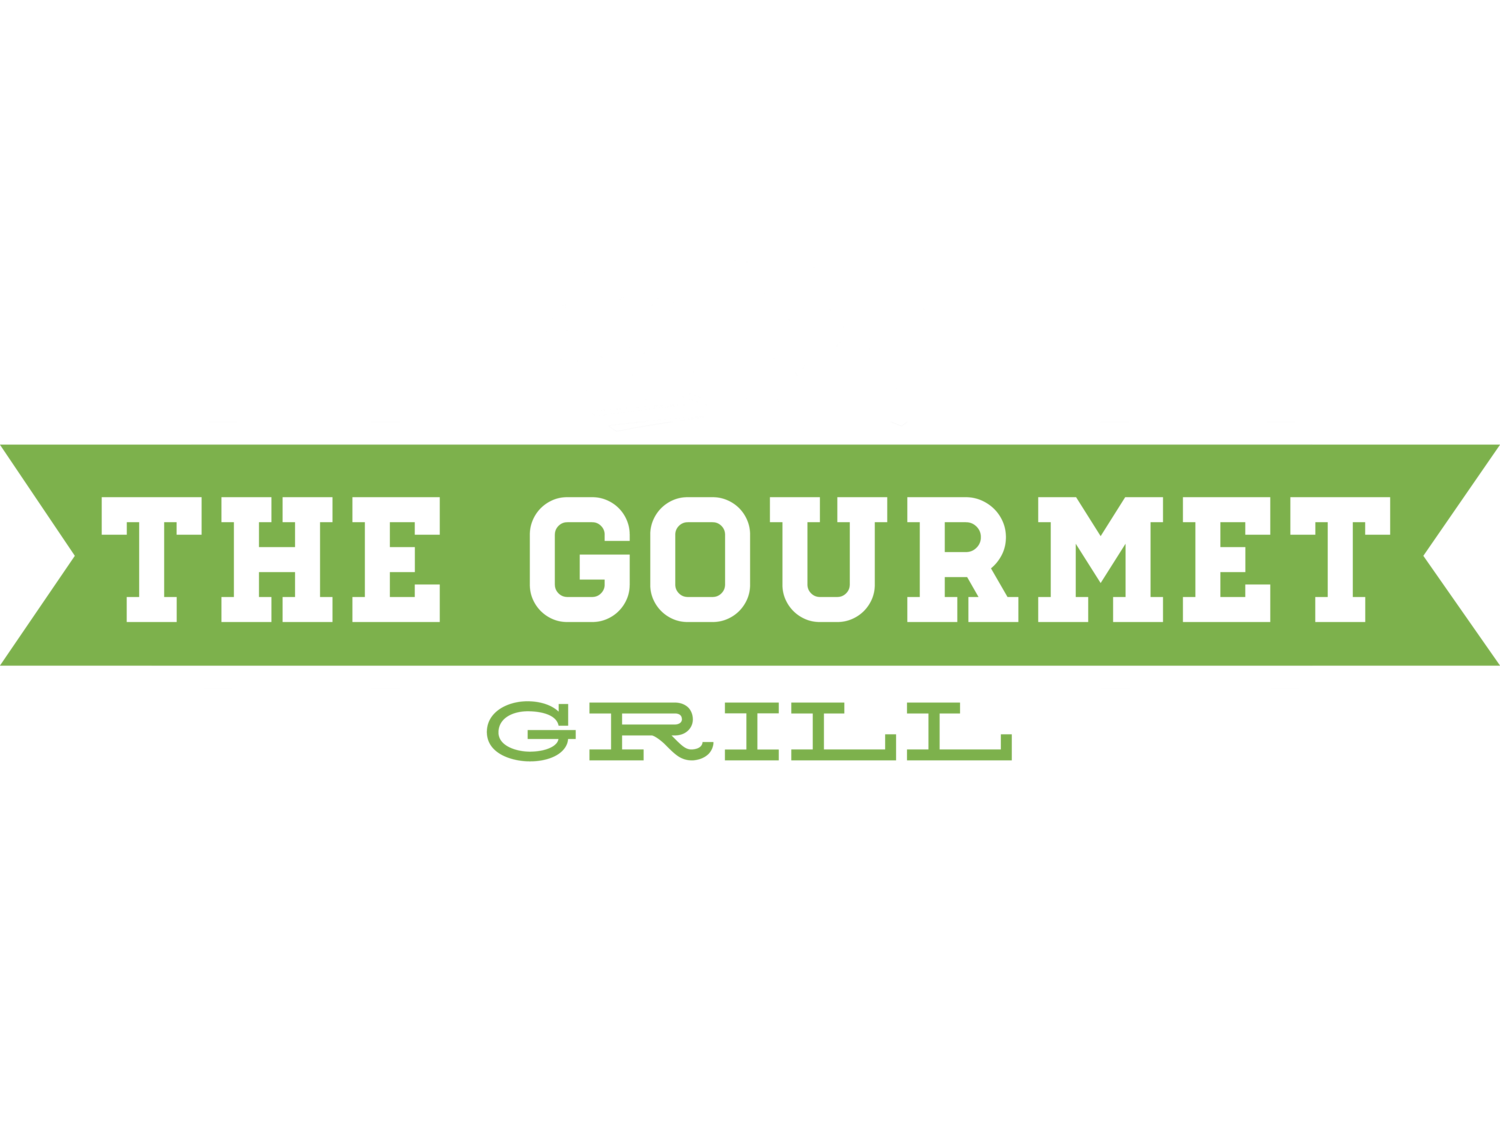 1010 Gourmet Grill